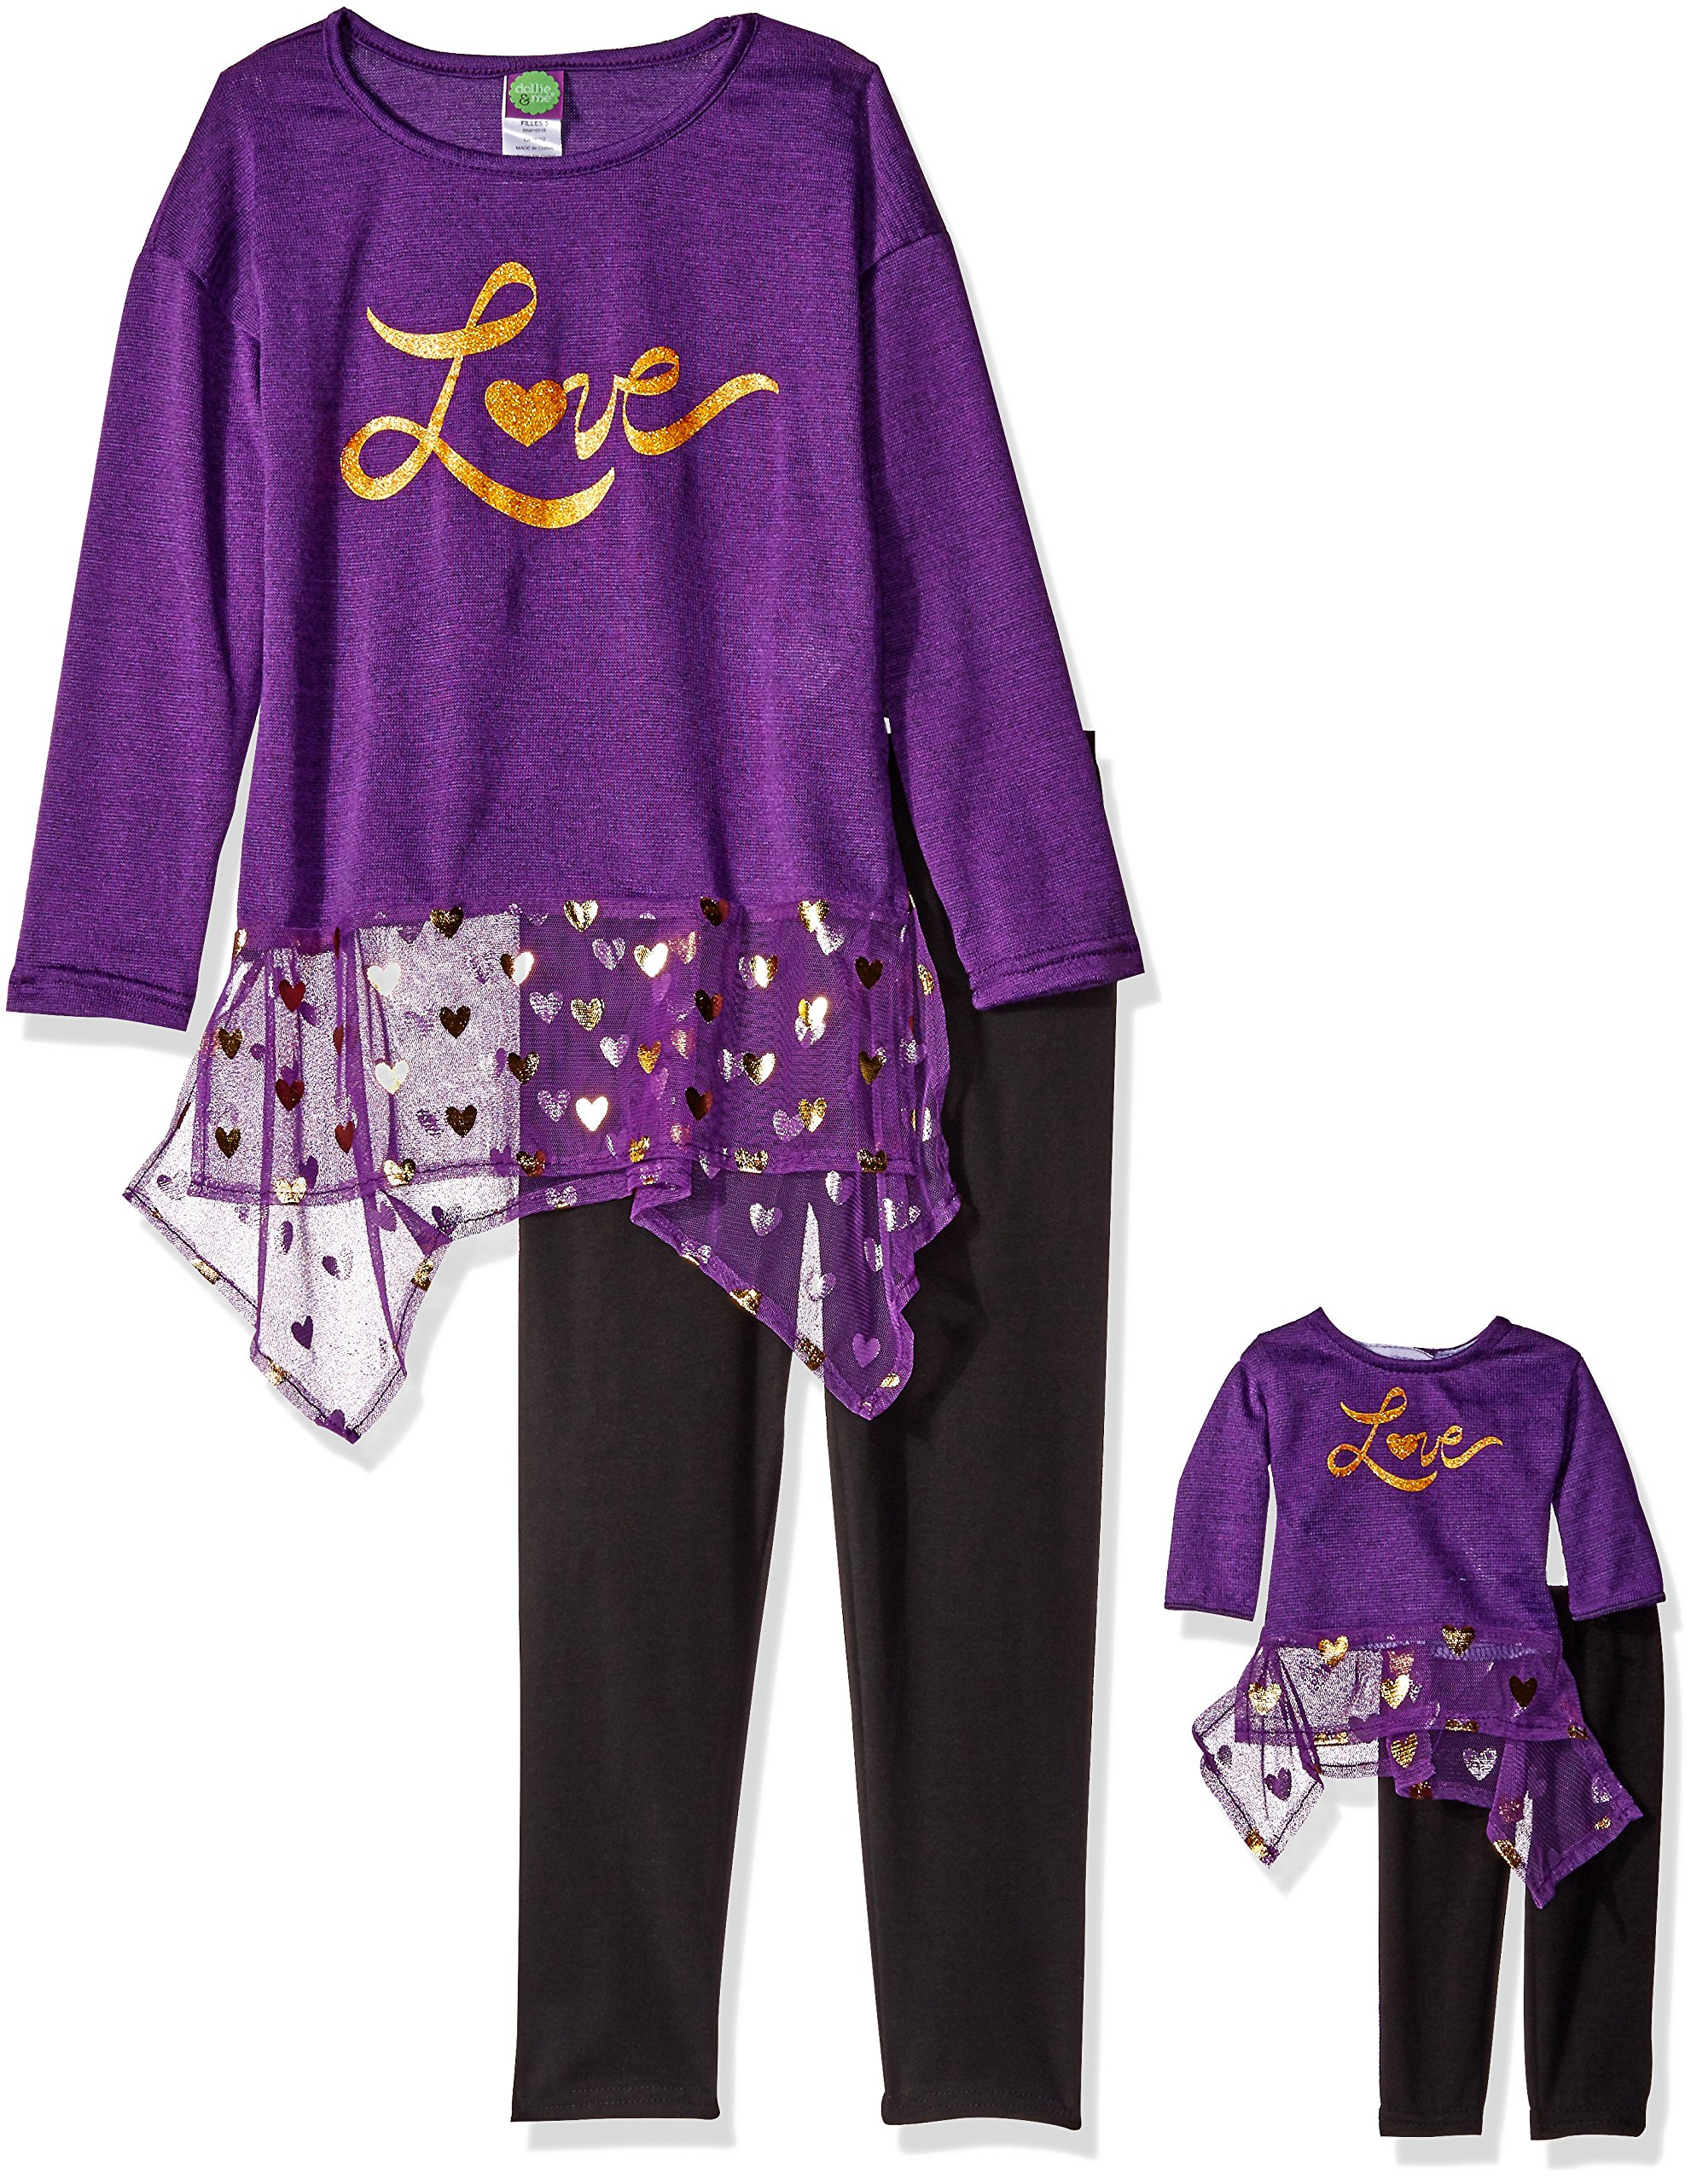 Dollie & Me Little Girls' Sweater Knit and Chiffon Love Dress with Legging, Purple/Black, 4